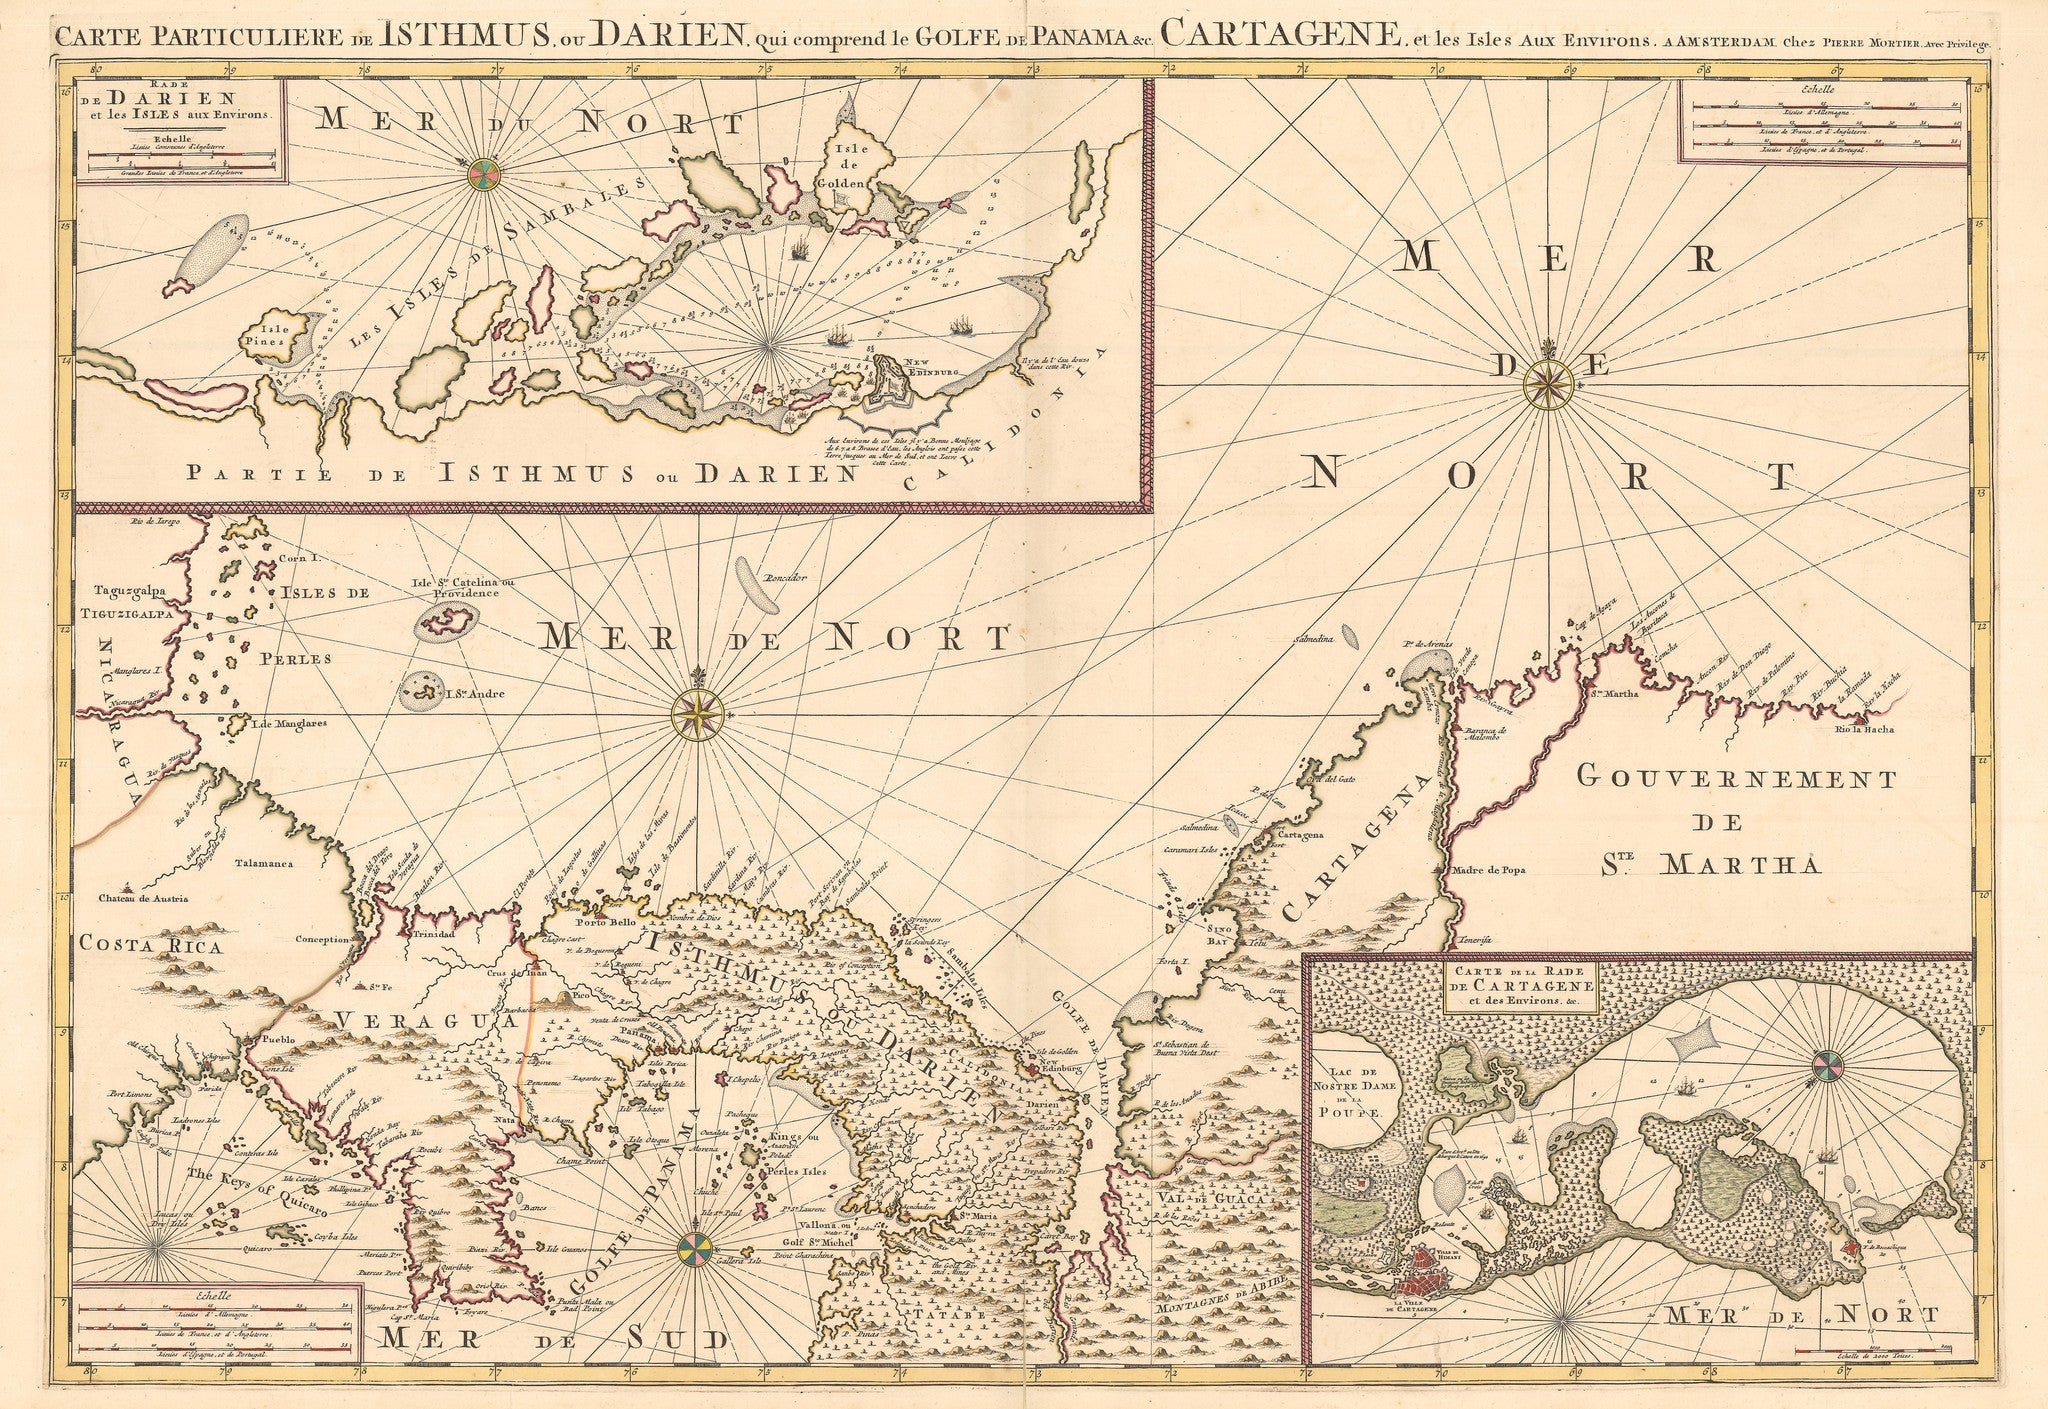 1700 Carte Particuliere de Isthmus ou Darien - the Vintage Map Shop ...